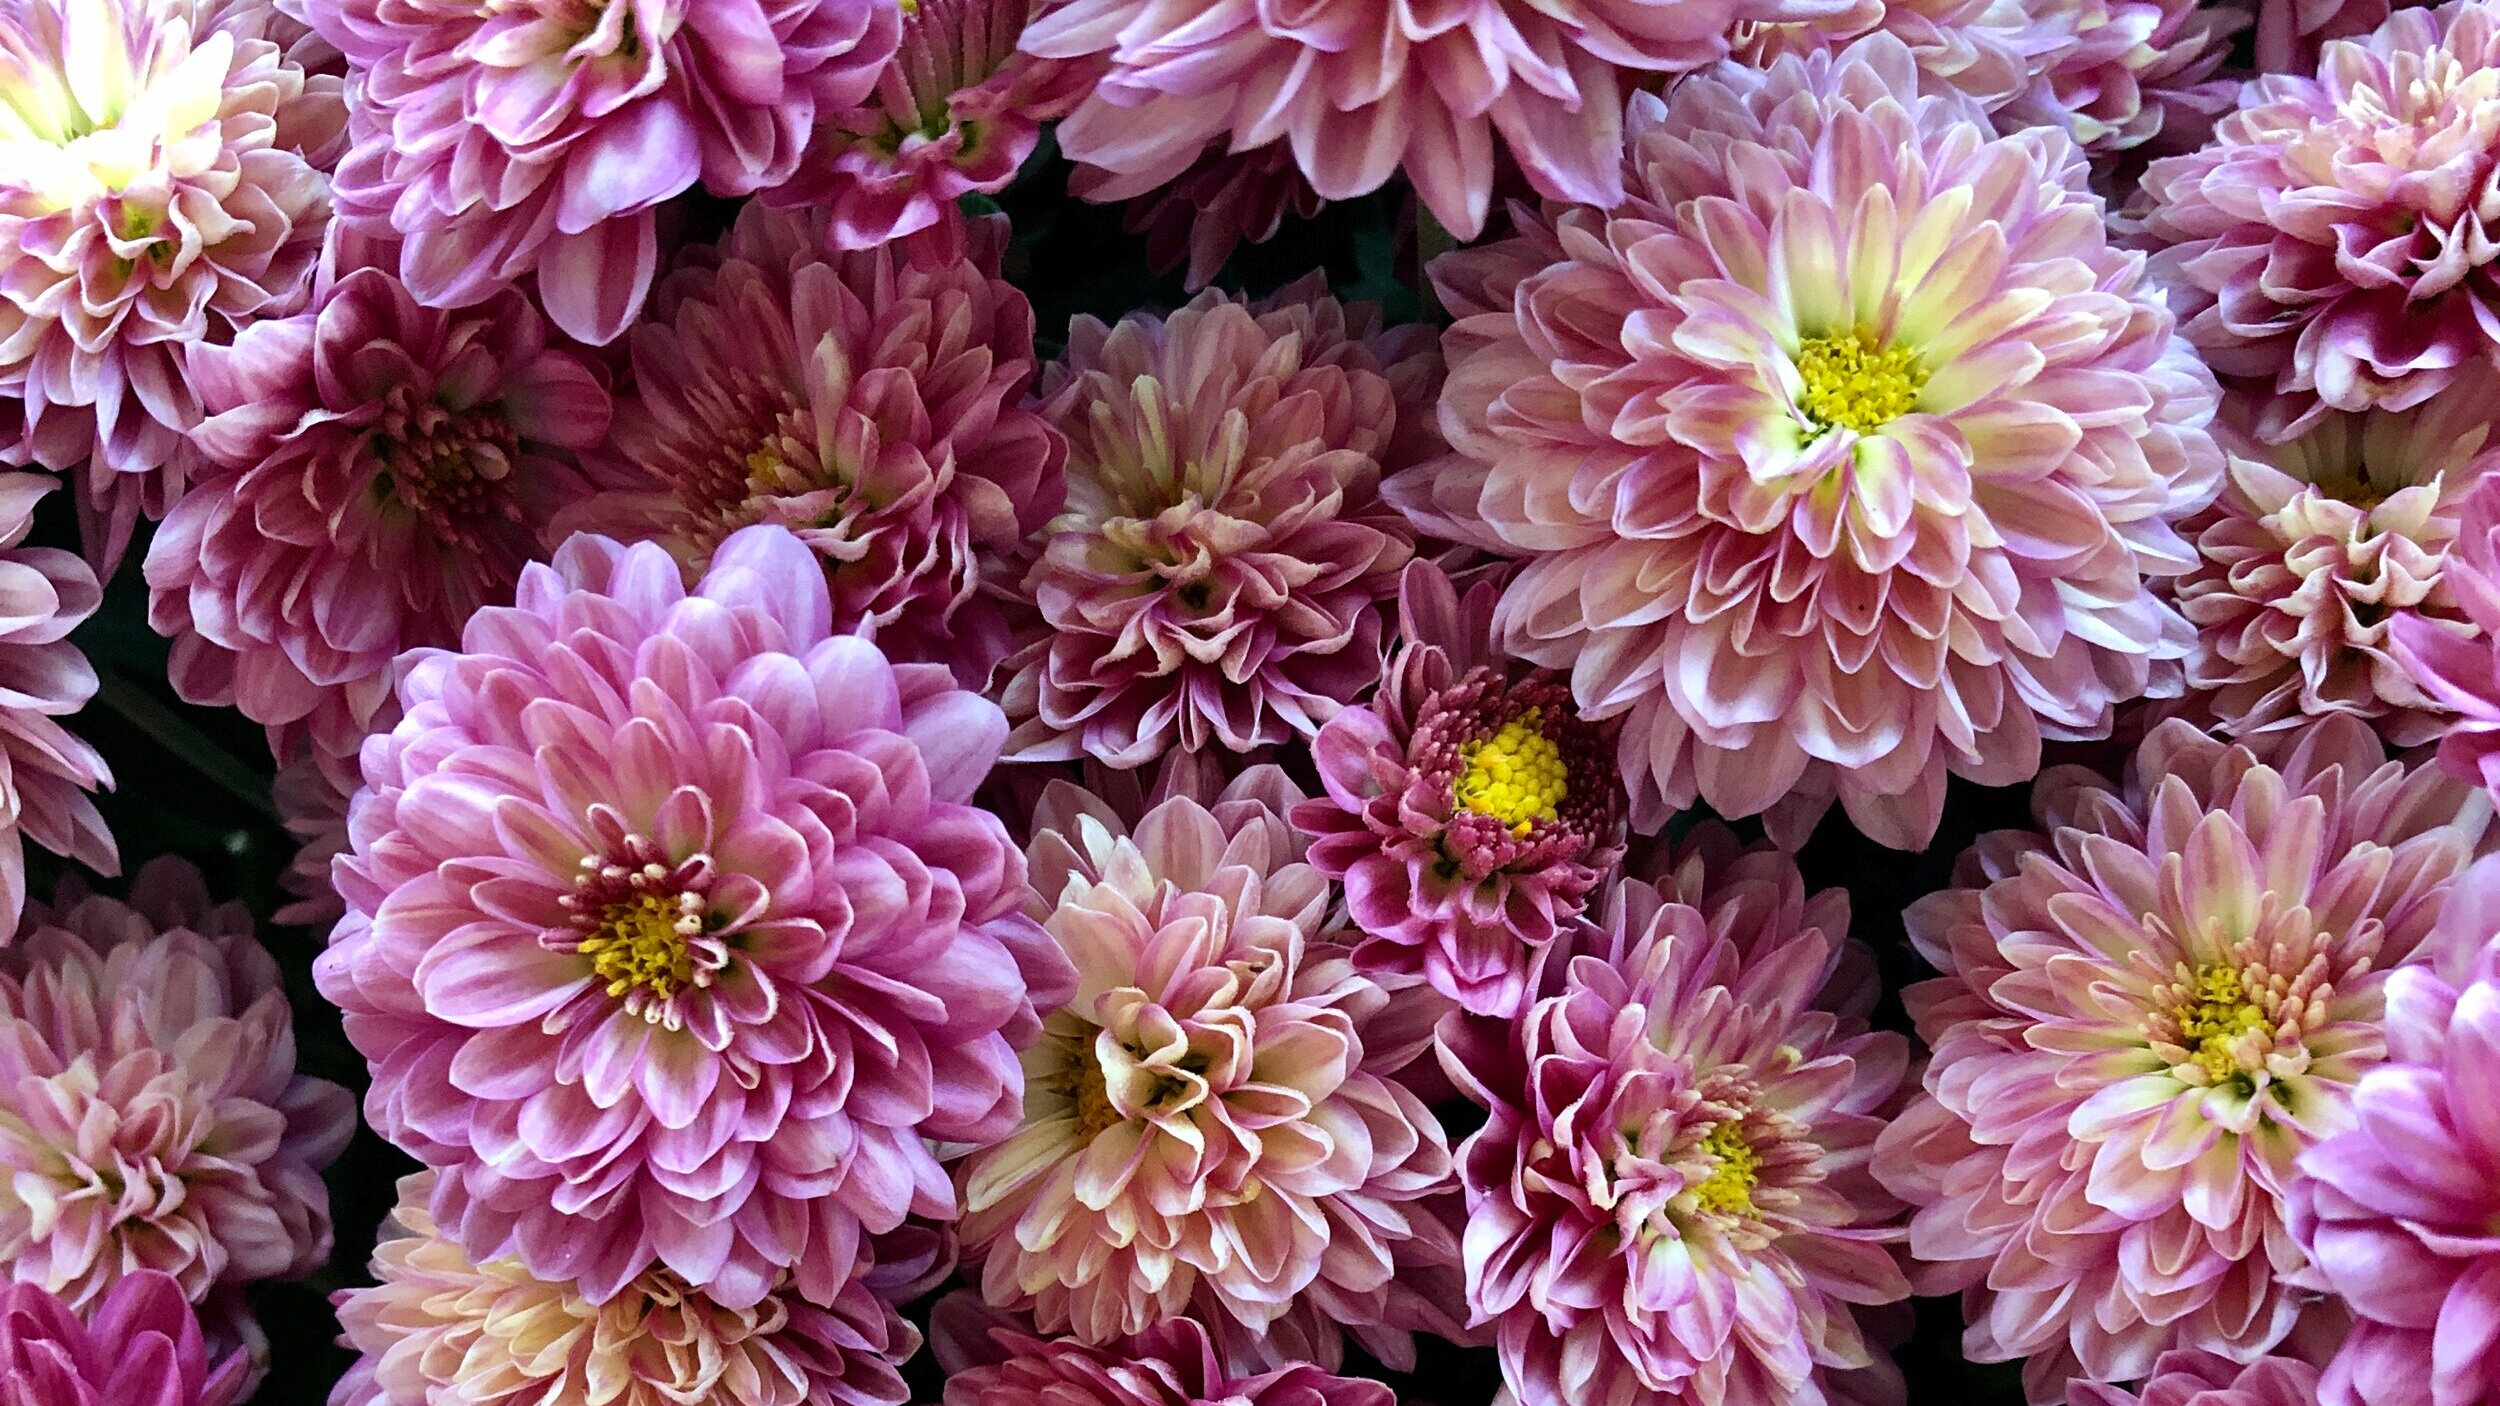 Did you know?! - 'Mums' is a nickname for 'Chrysanthemums!'